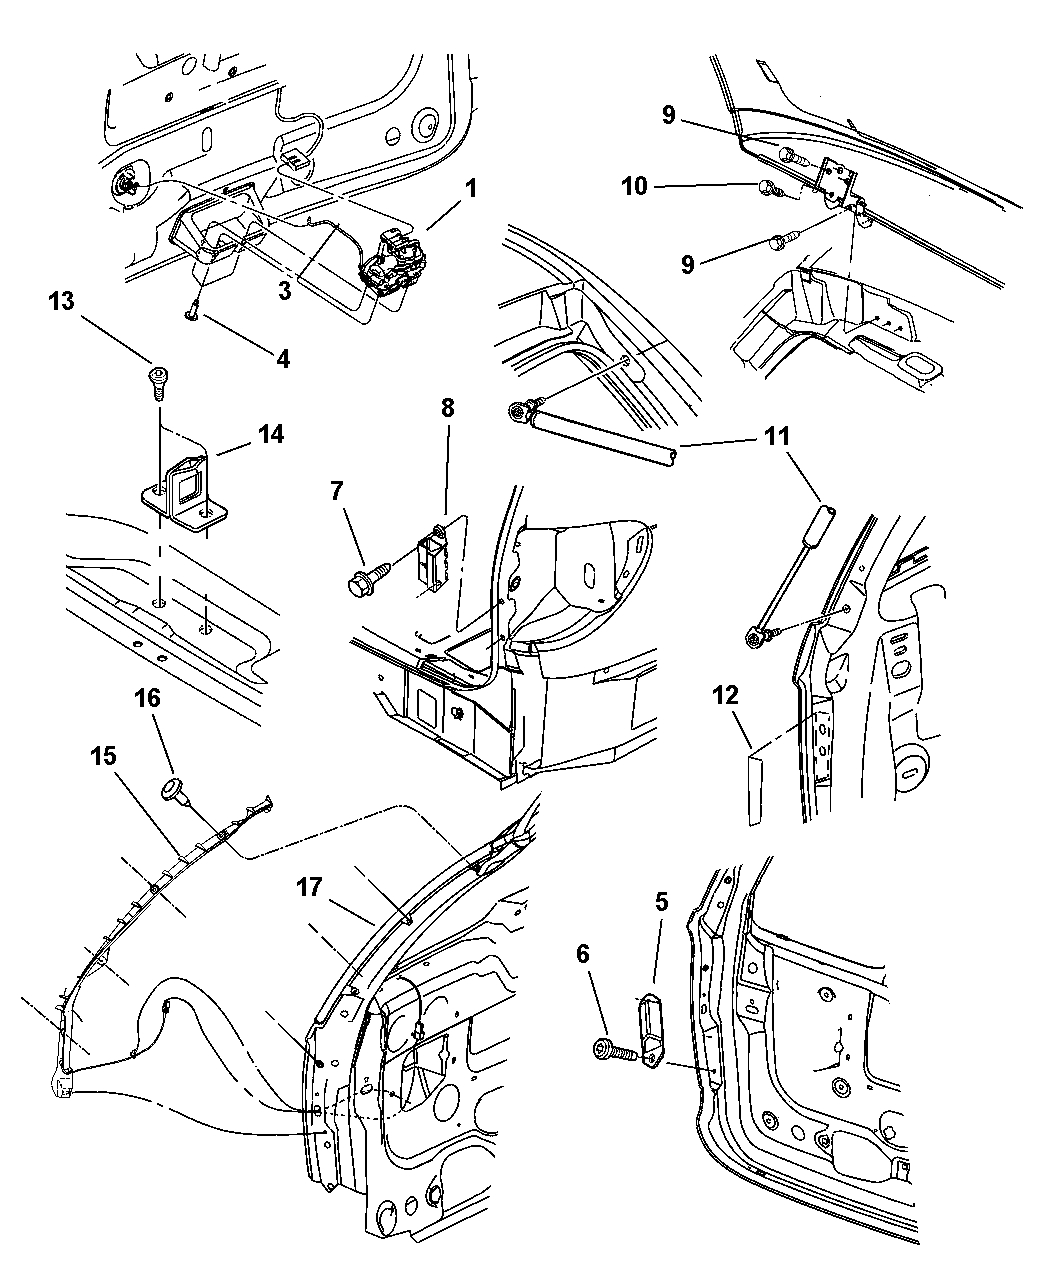 5019039Aa - Genuine Mopar Latch-Liftgate within 2001 Chrysler Town And Country Parts Diagram